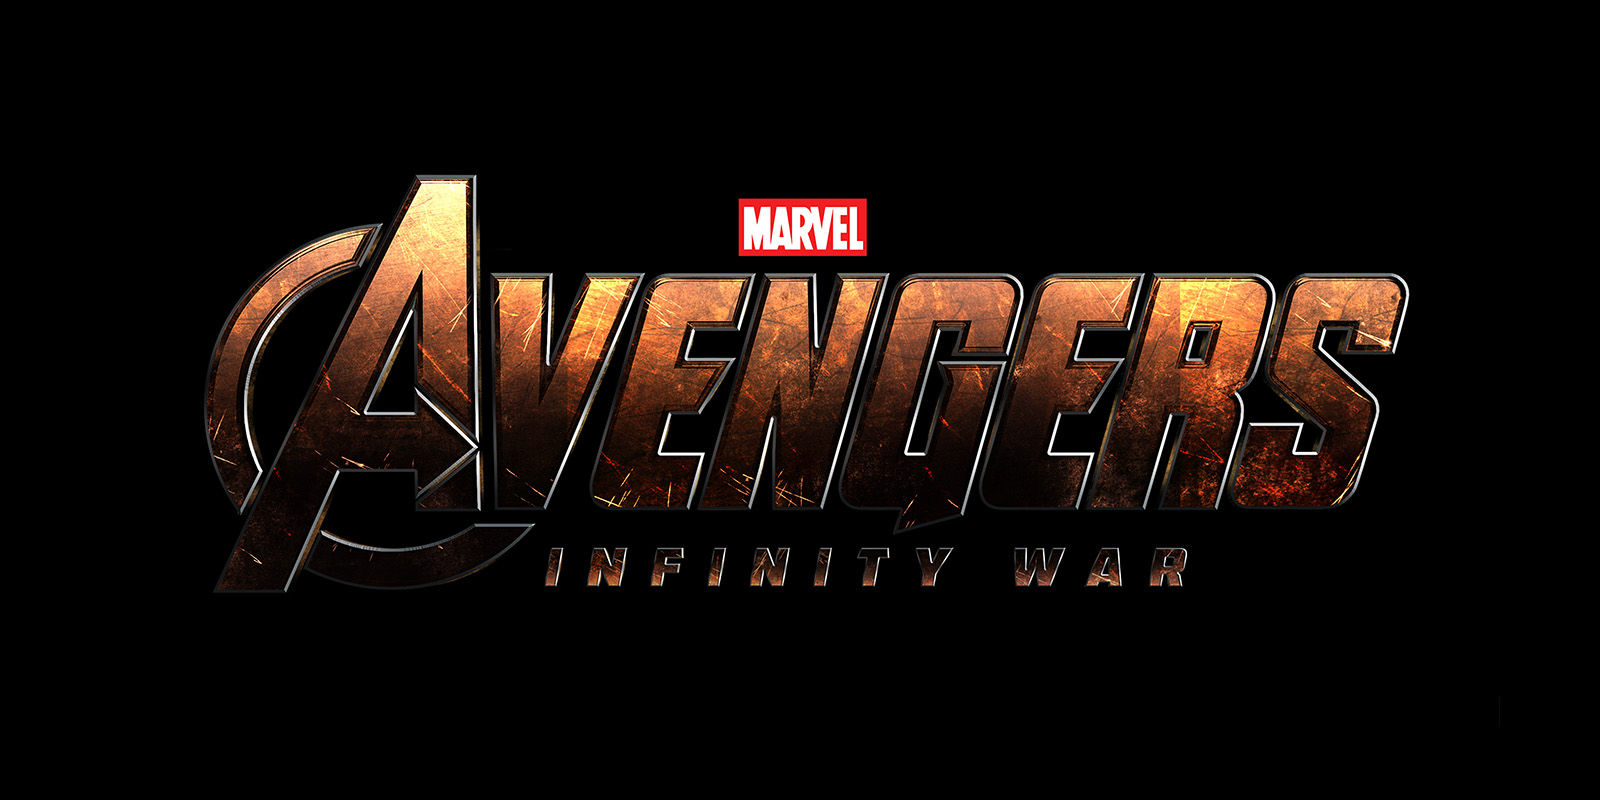 The Avengers: Infinity War logo on a black background